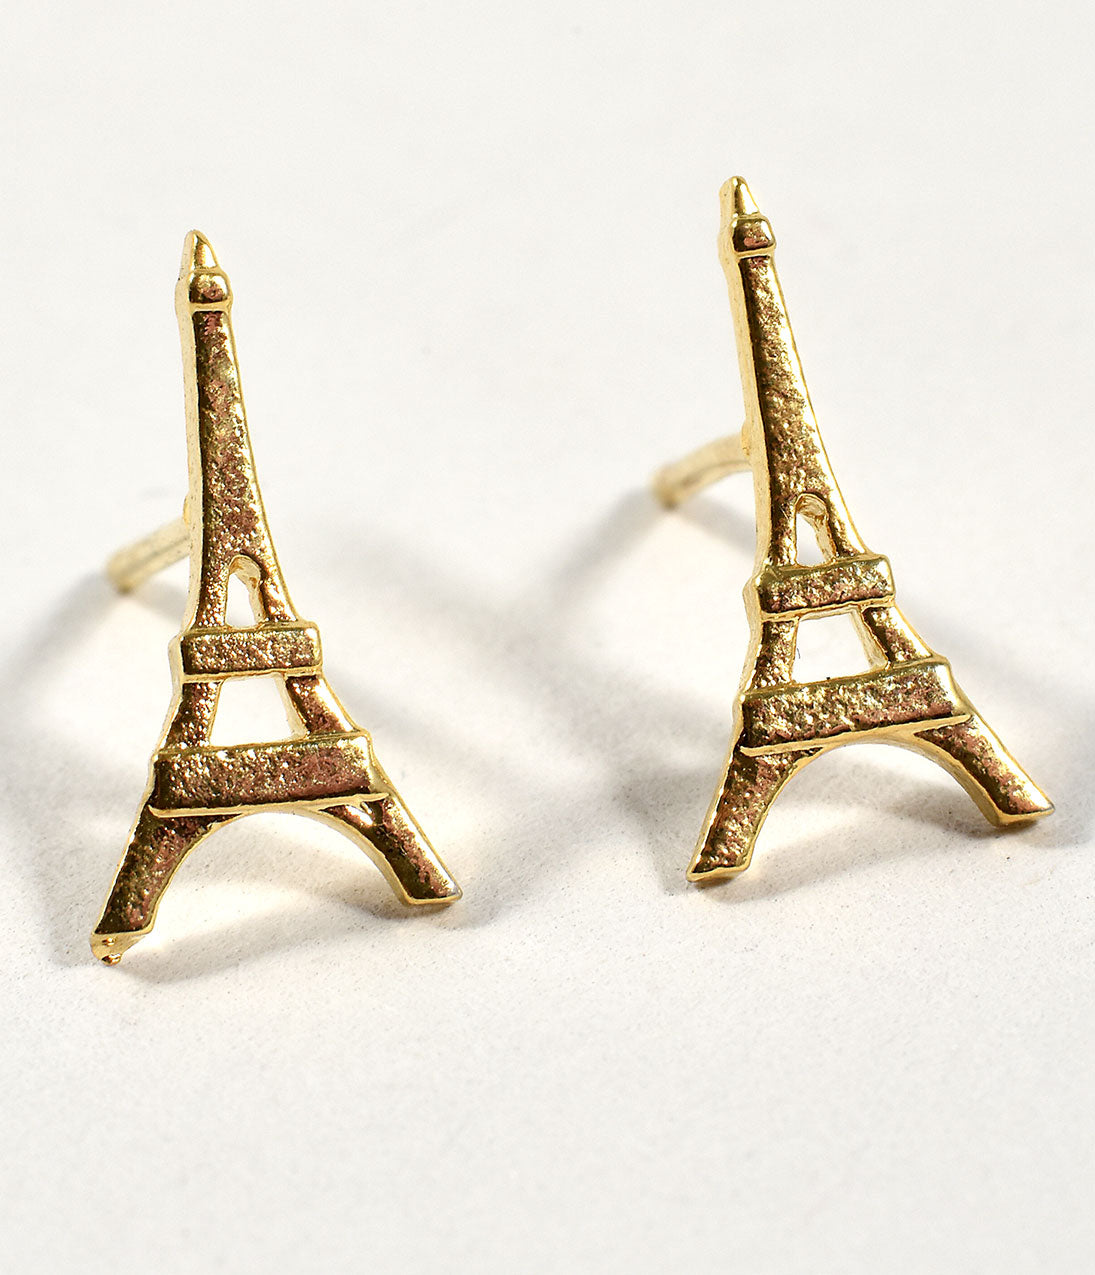 Vintage Style Jewelry, Retro Jewelry Gold Eiffel Tower Stud Earrings $14.00 AT vintagedancer.com